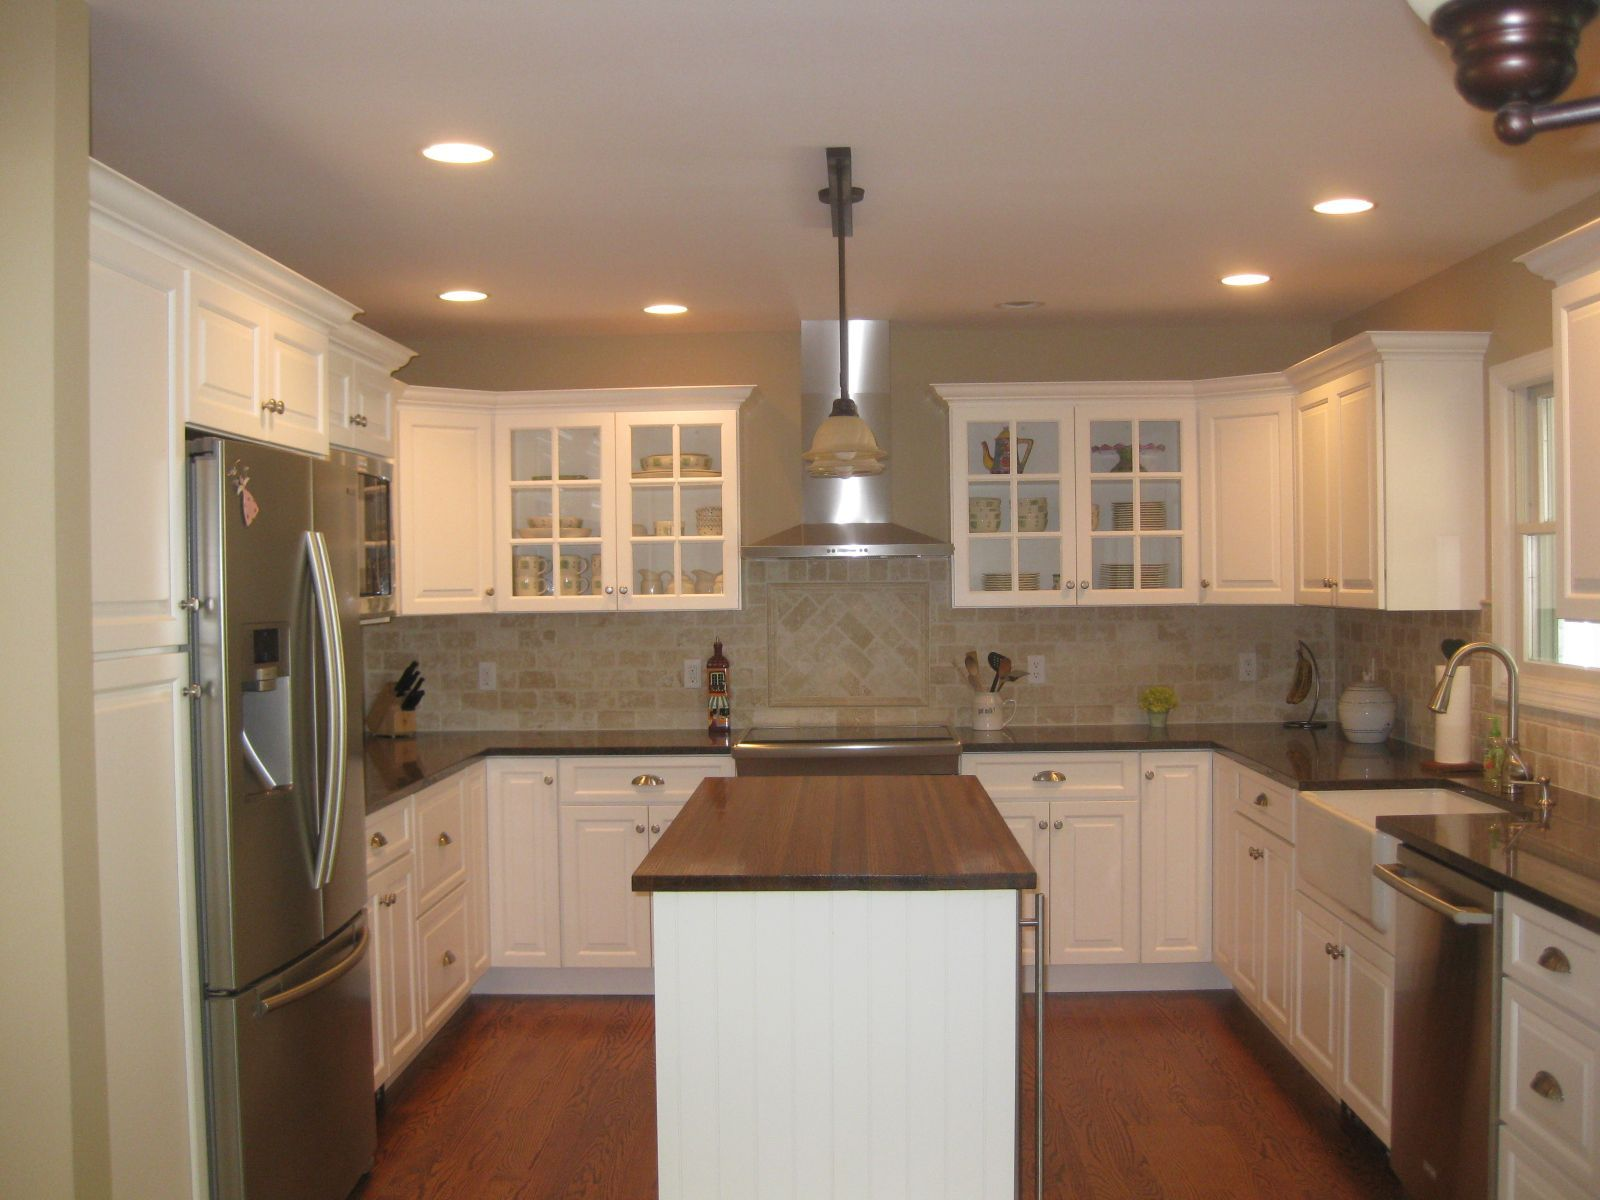 More Ideas Below Kitchenremodel Kitchenideas Small U Shaped Kitchen With Island Design Farmhouse Peninsula Before And After